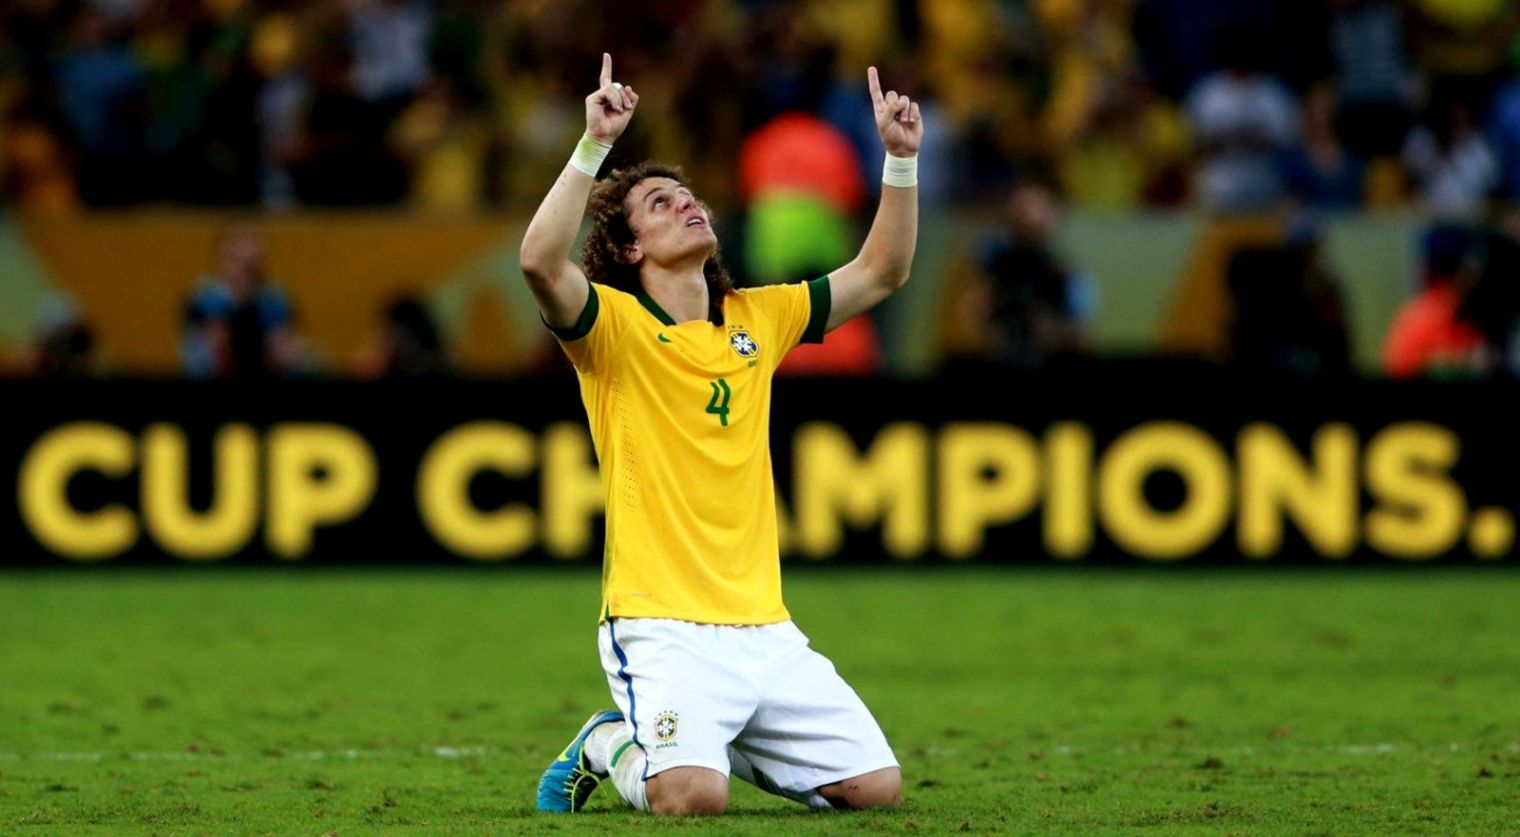 David Luiz 001 Hd Wallpaper